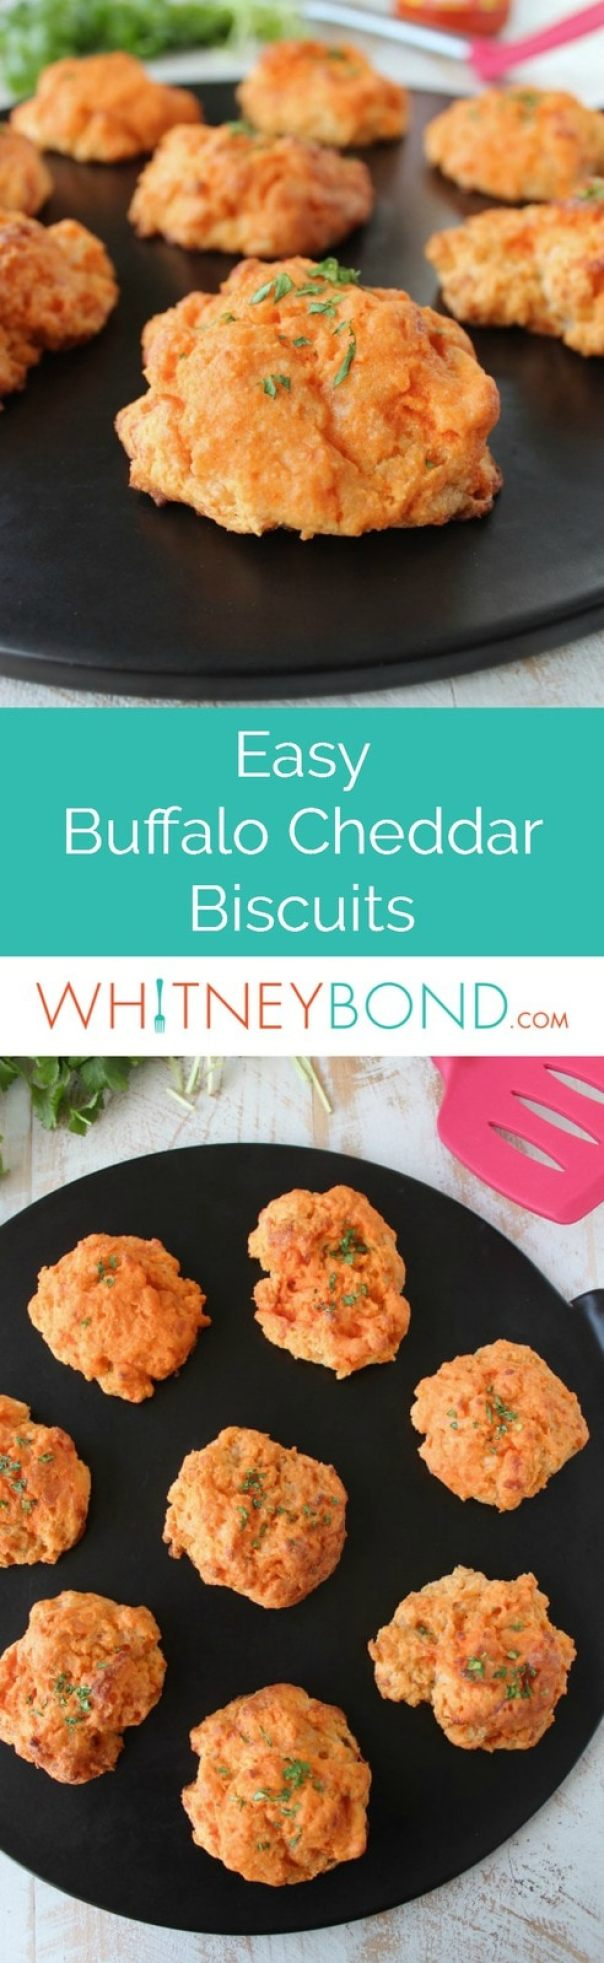 In this scrumptious, easy biscuit recipe, everyone's favorite garlic cheddar biscuits are given a spicy twist with the addition of buffalo sauce!